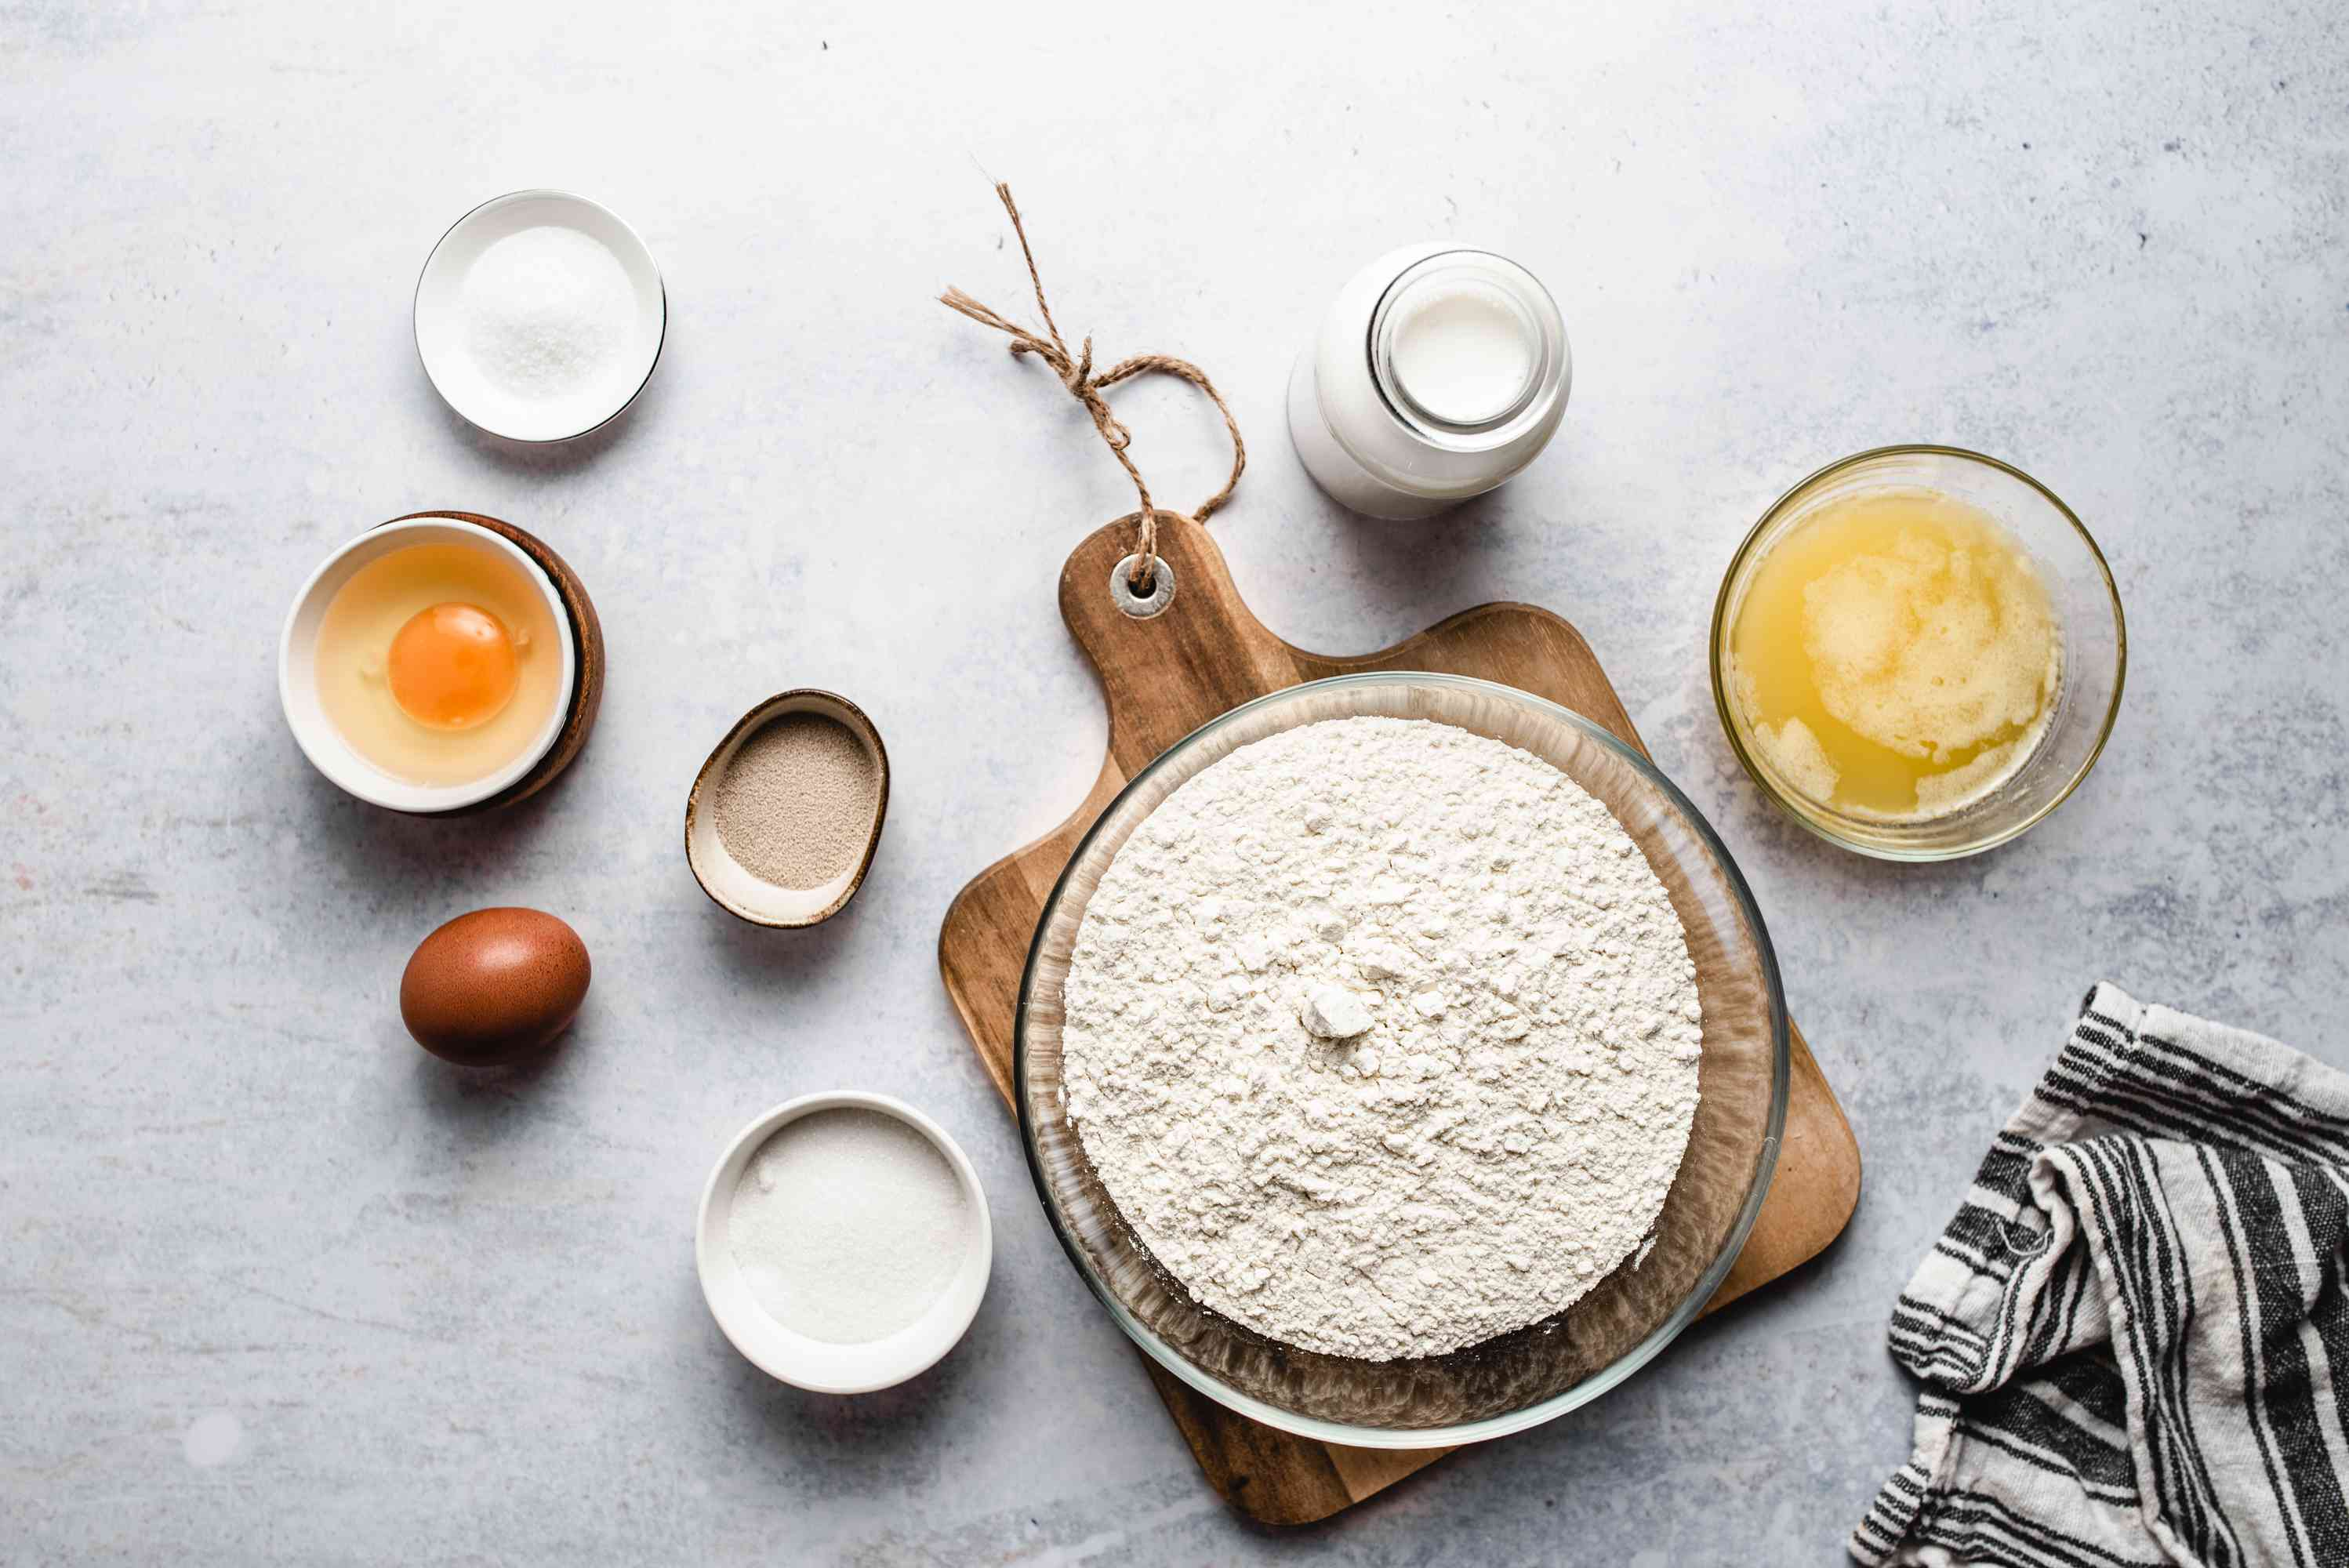 Ingredients for Southern style butter yeast rolls